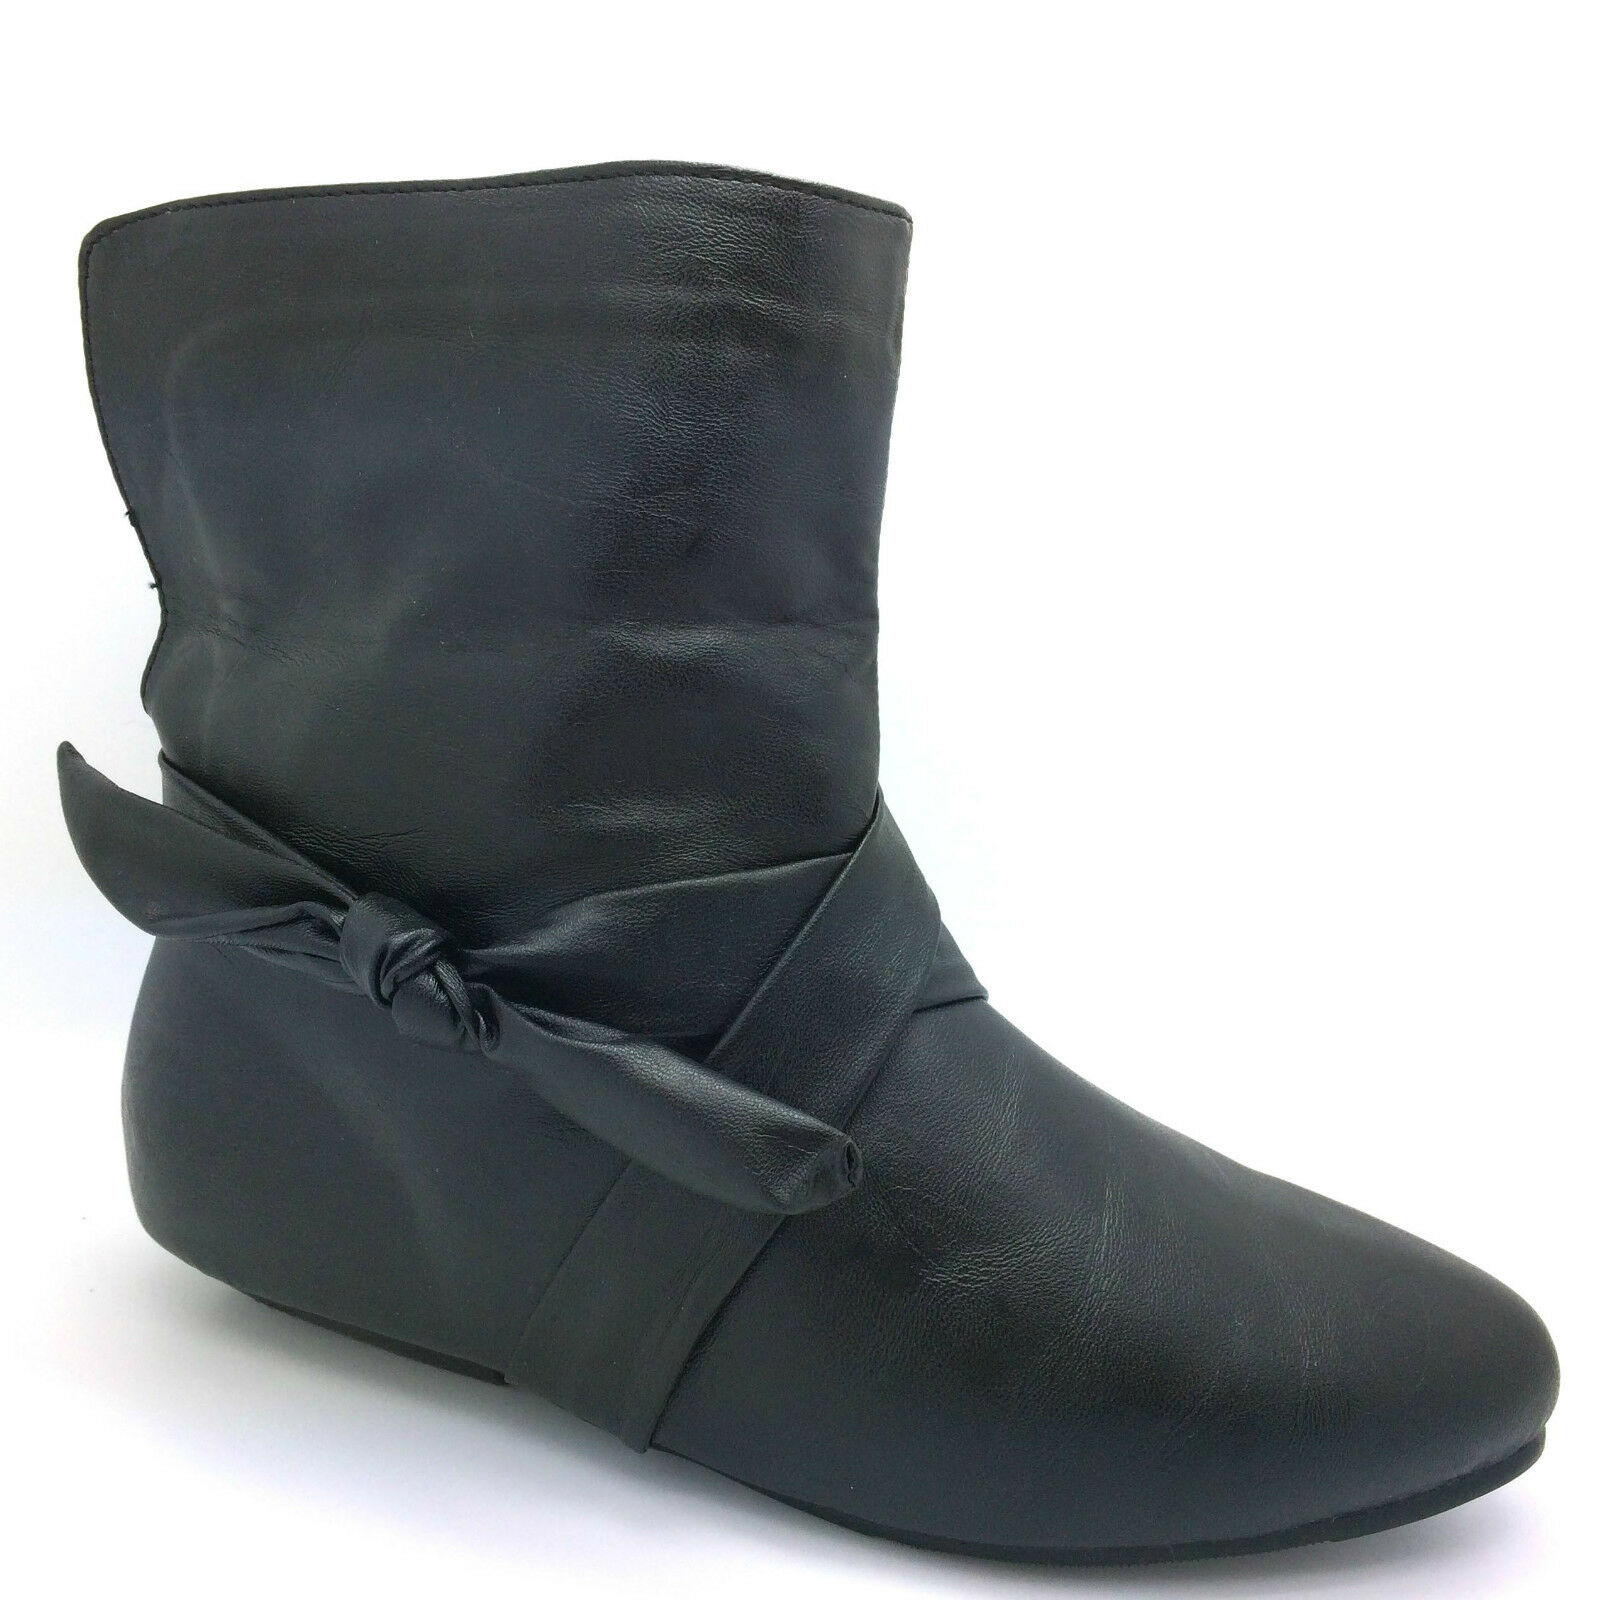 NEW WOMENS LADIES LOW FLAT ANKLE CHELSEA BOOTS PULL ON STRETCH CHELSEA ANKLE RIDING SHOE FB506 16e52f